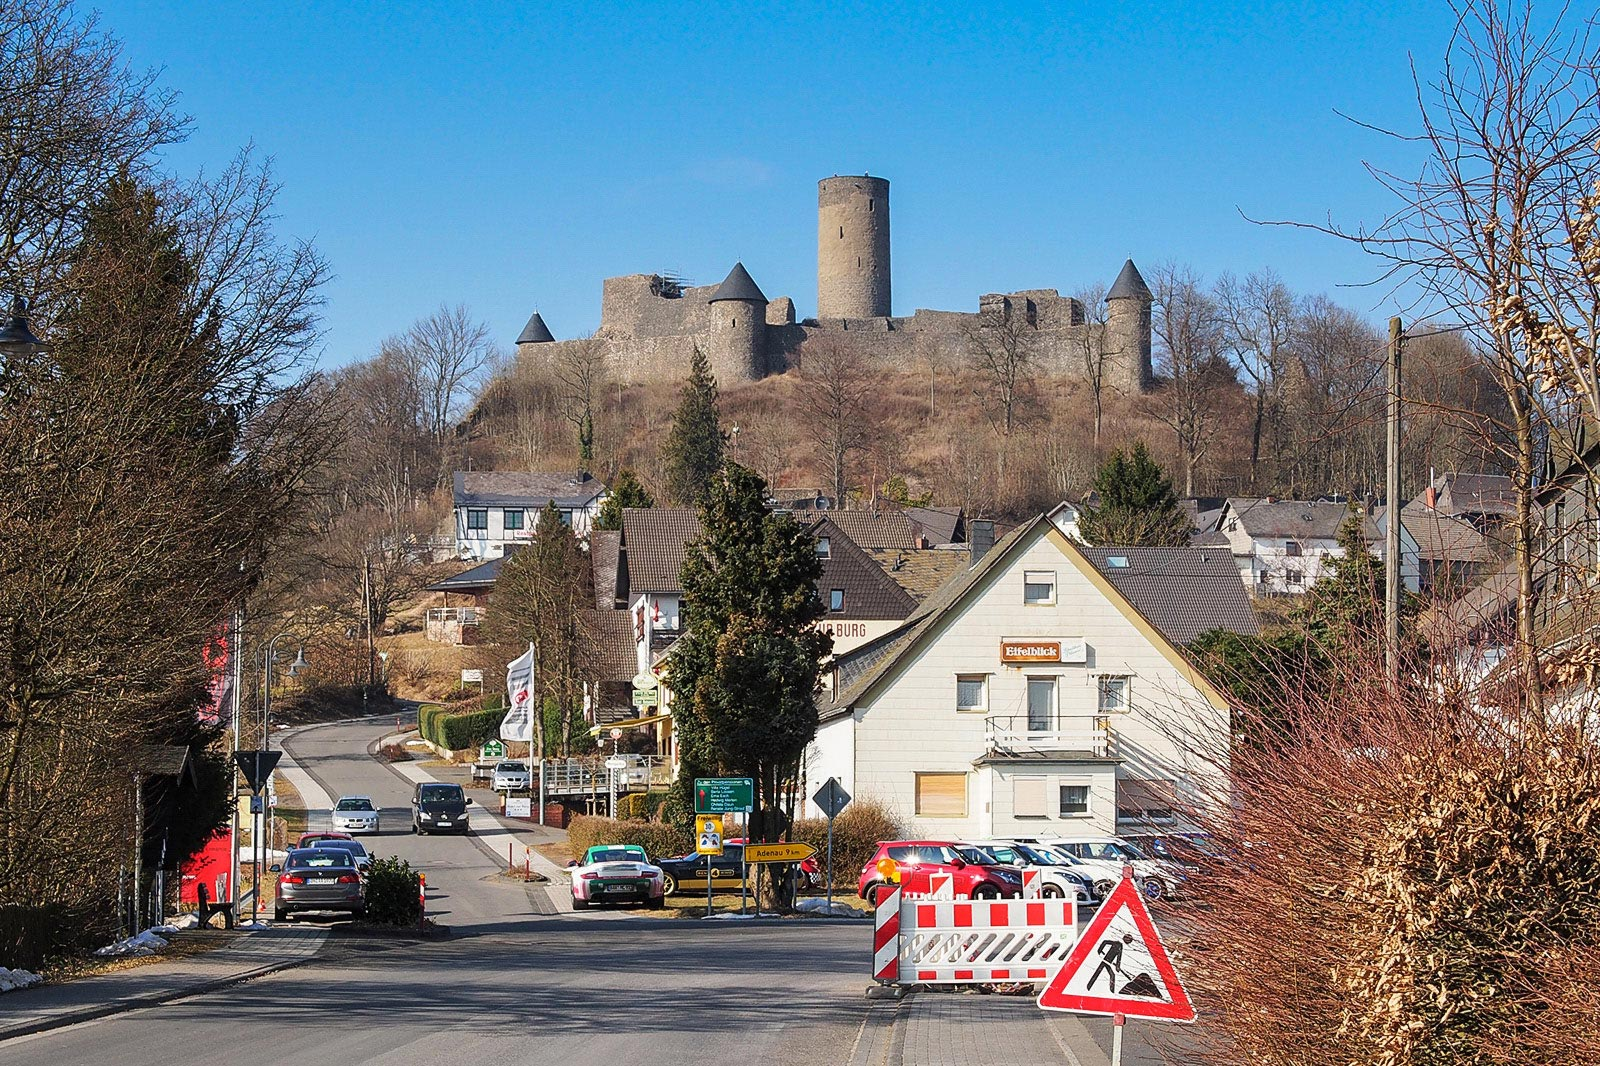 Clear skies over Nürburg.